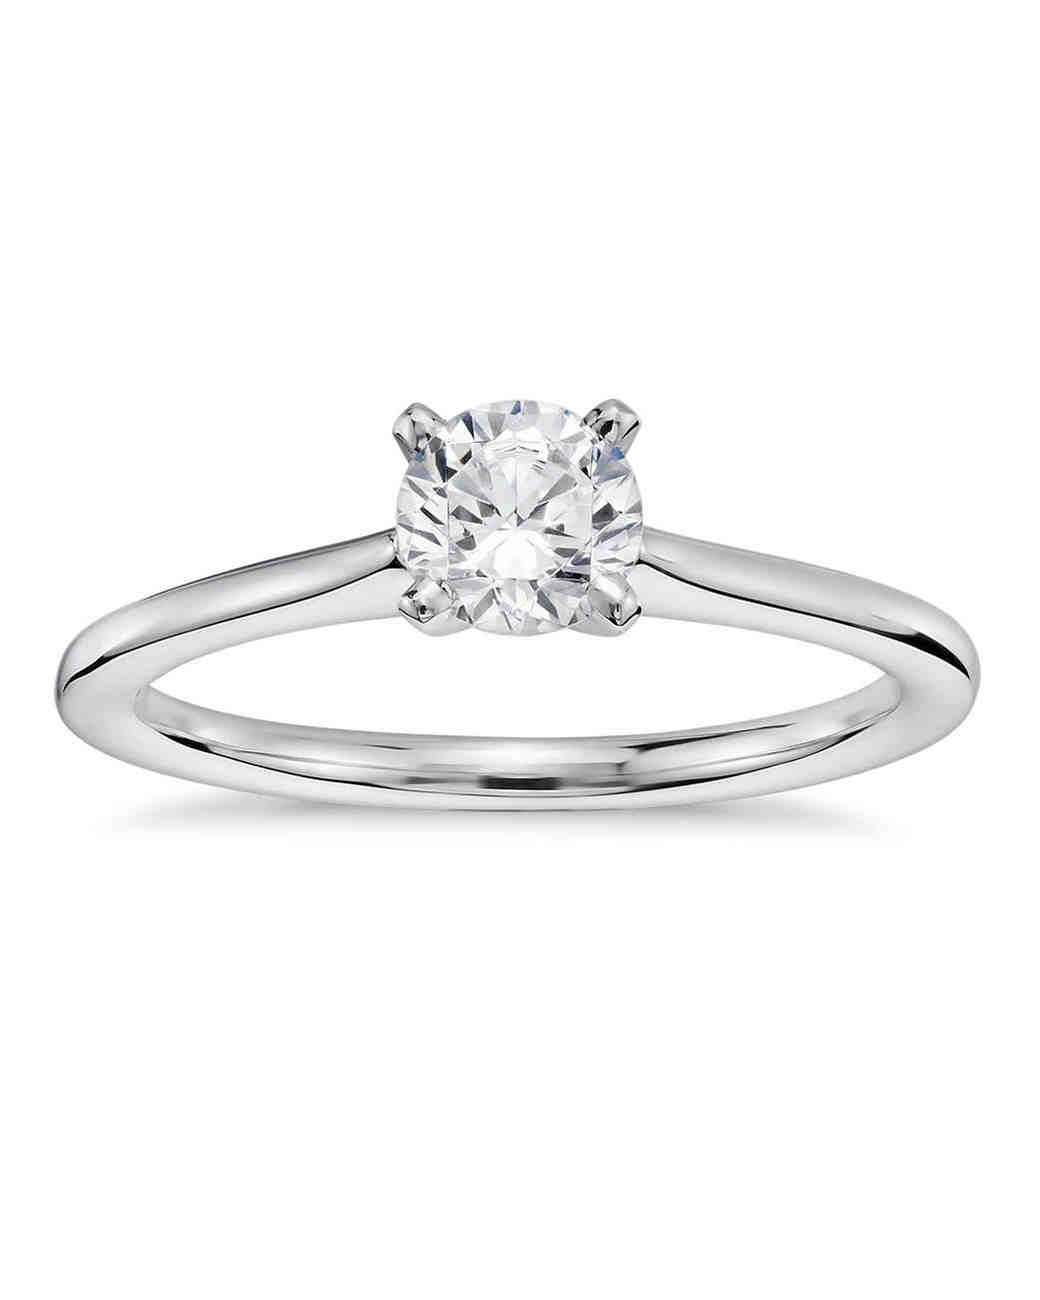 Blue Nile Petite Solitaire Engagement Ring